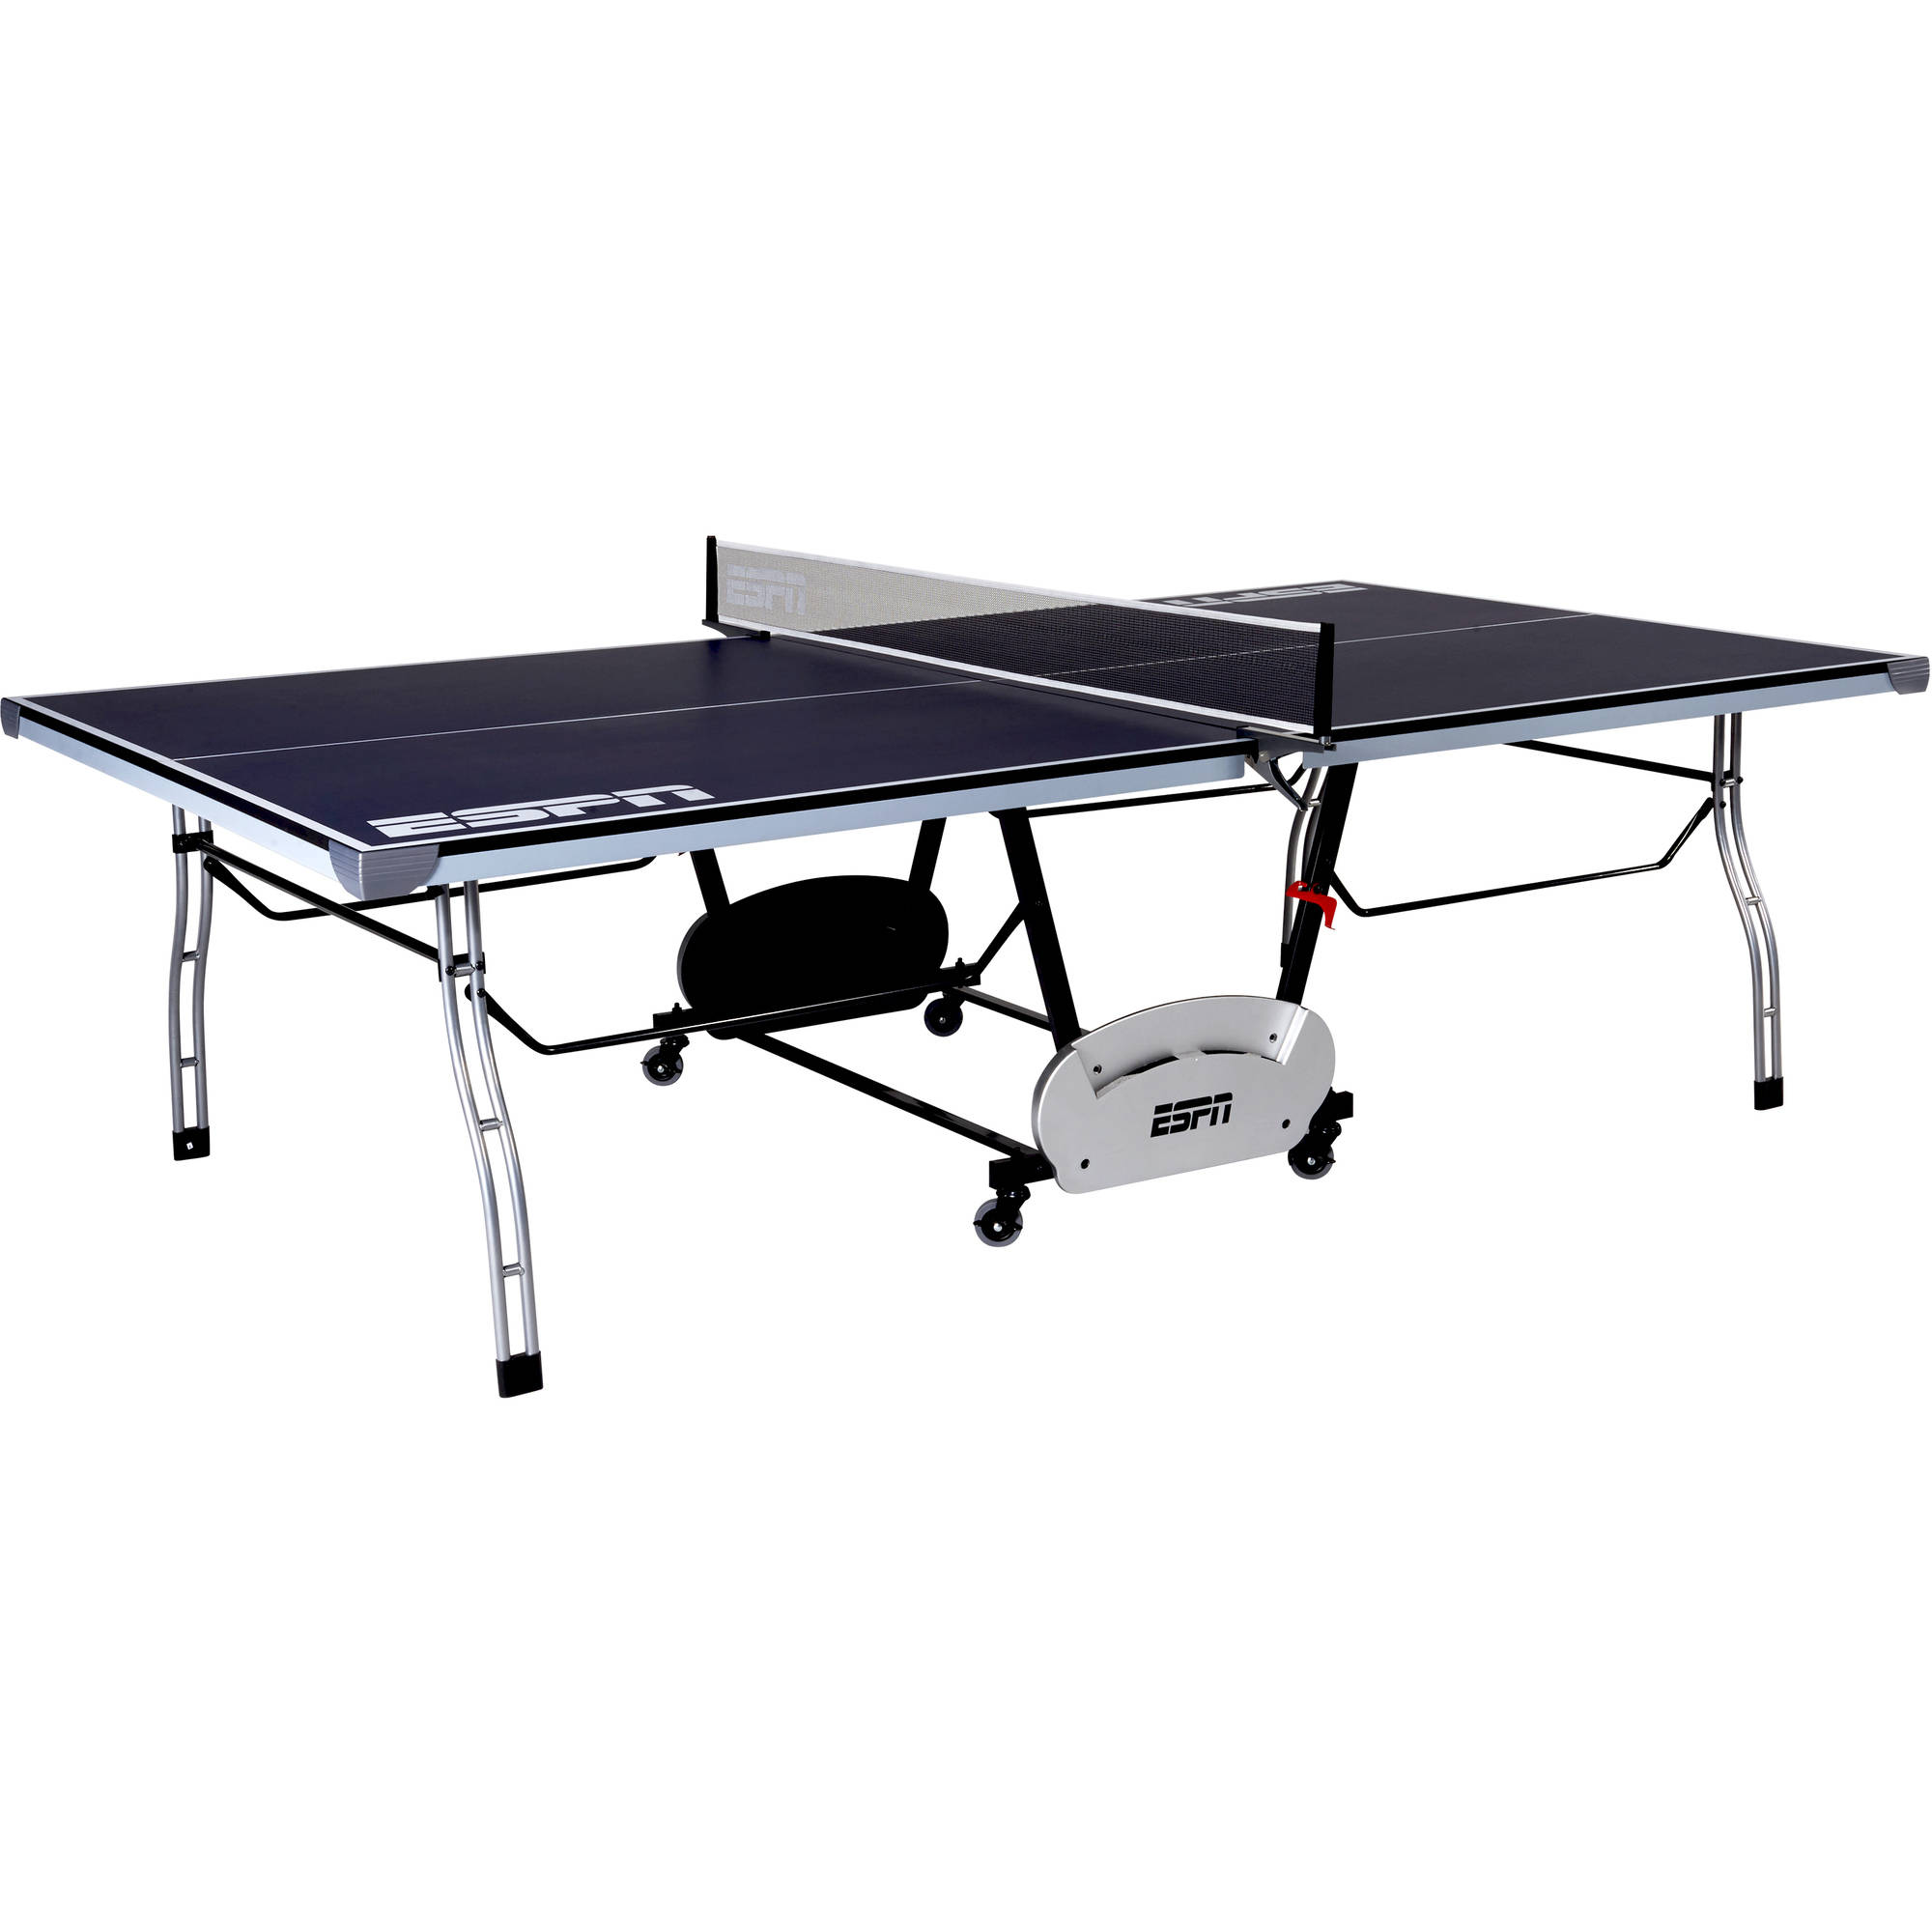 ESPN Official Size Table Tennis Table (Box 1 Of 2)